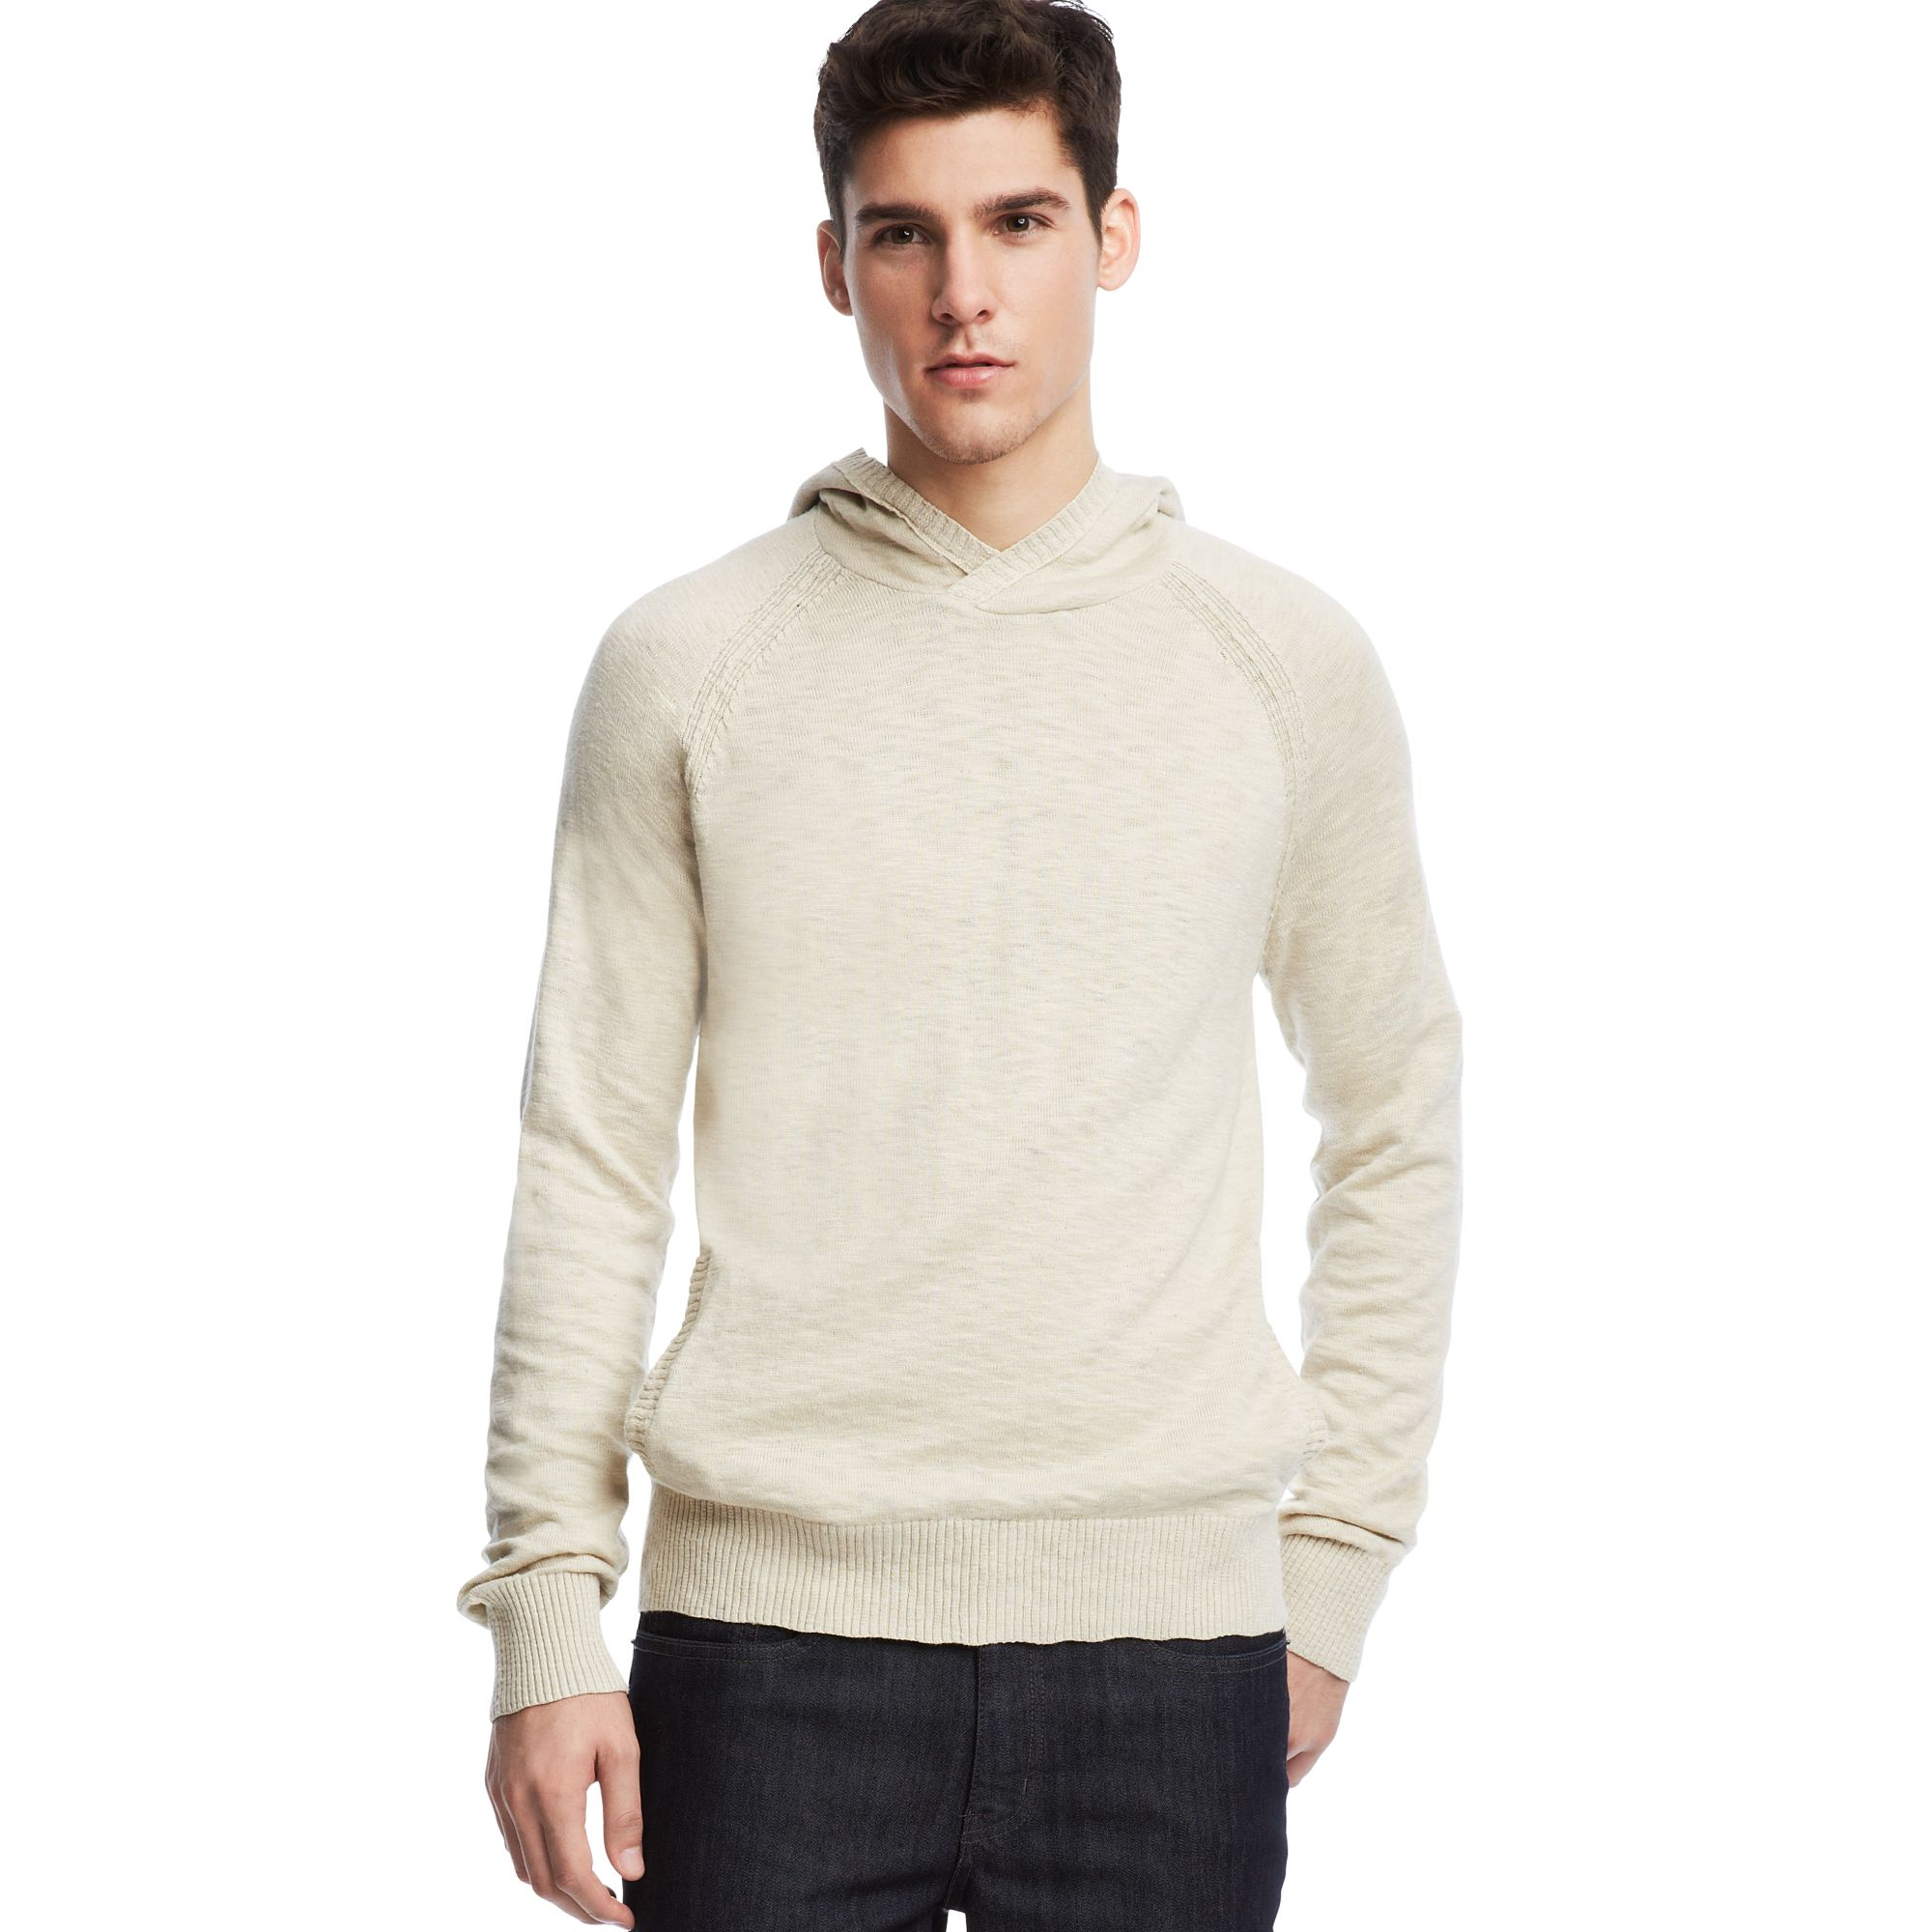 kenneth cole reaction long sleeve pullover hoodie sweater in natural for men lyst. Black Bedroom Furniture Sets. Home Design Ideas